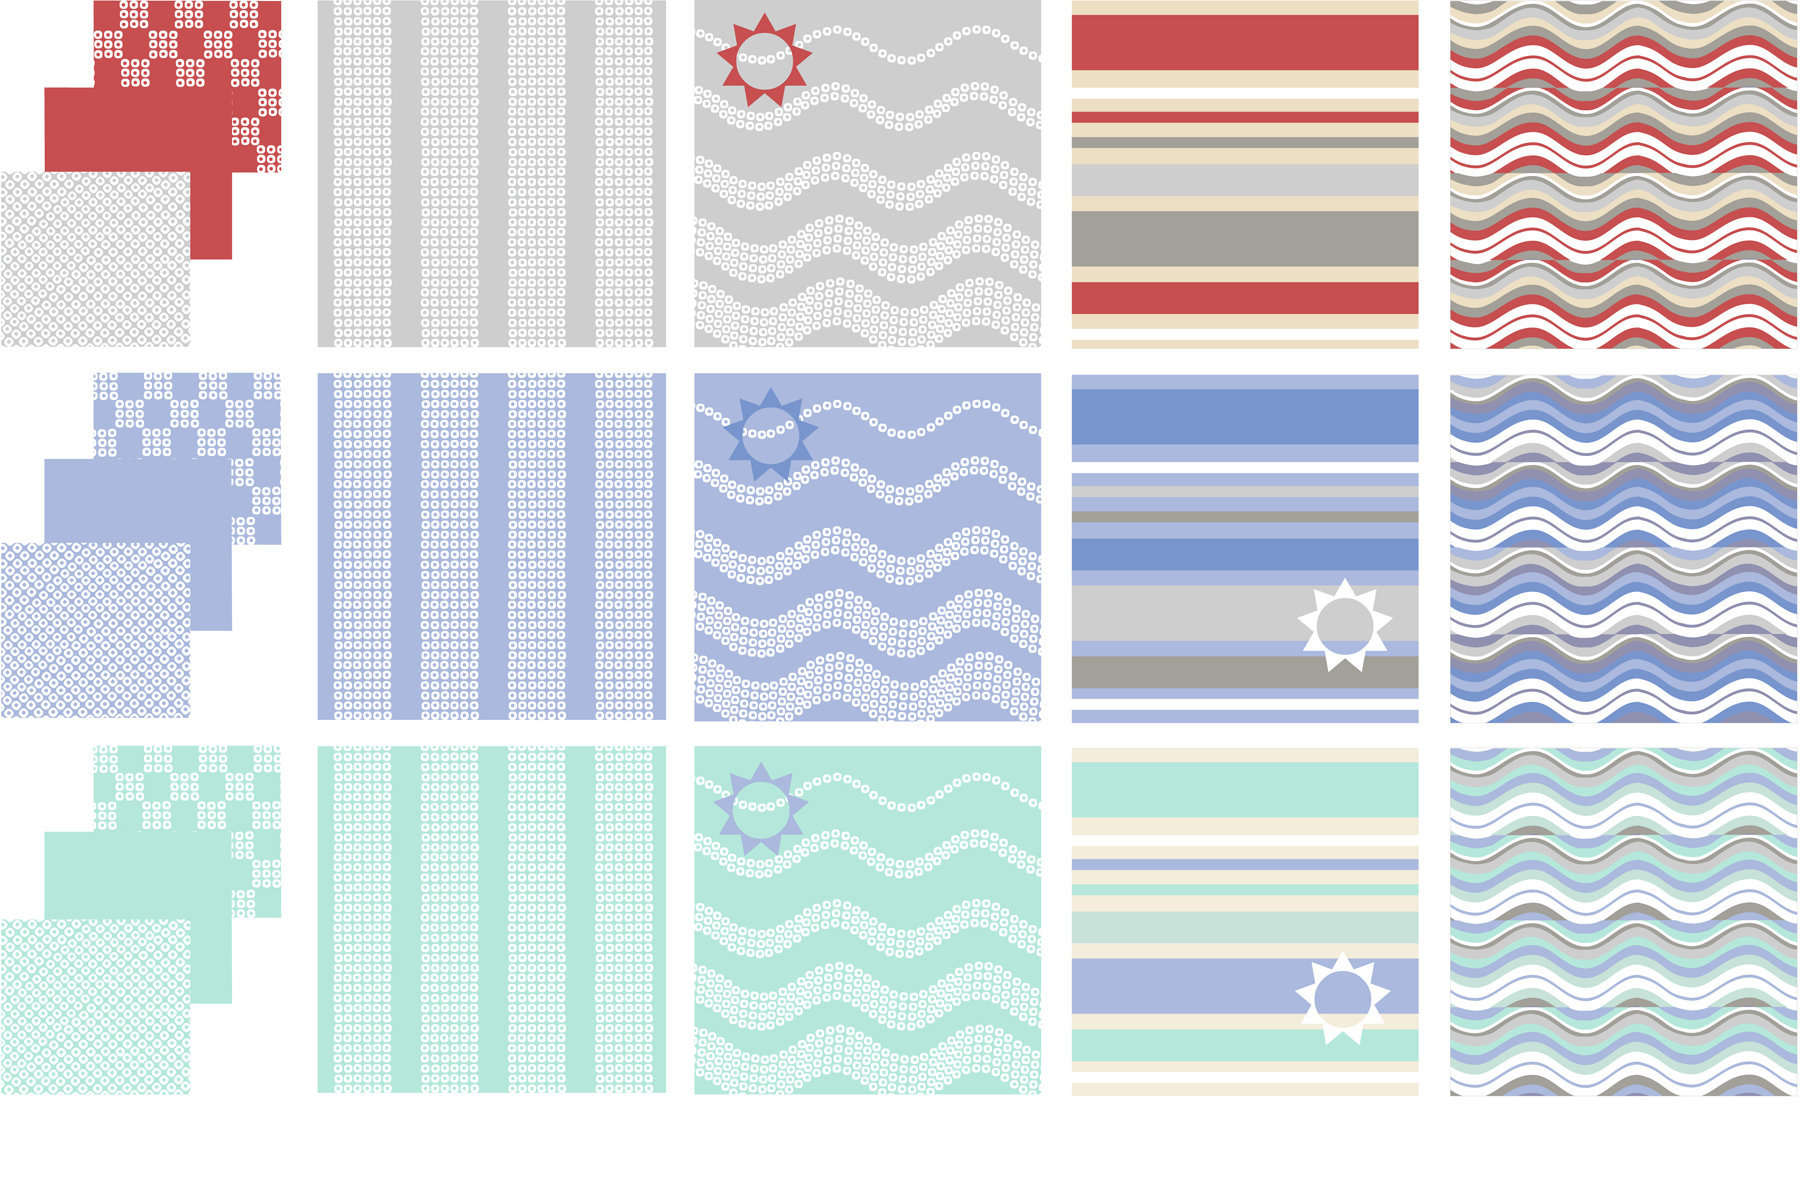 Surface pattern for Spring/Summer products, shown working across three colourways.